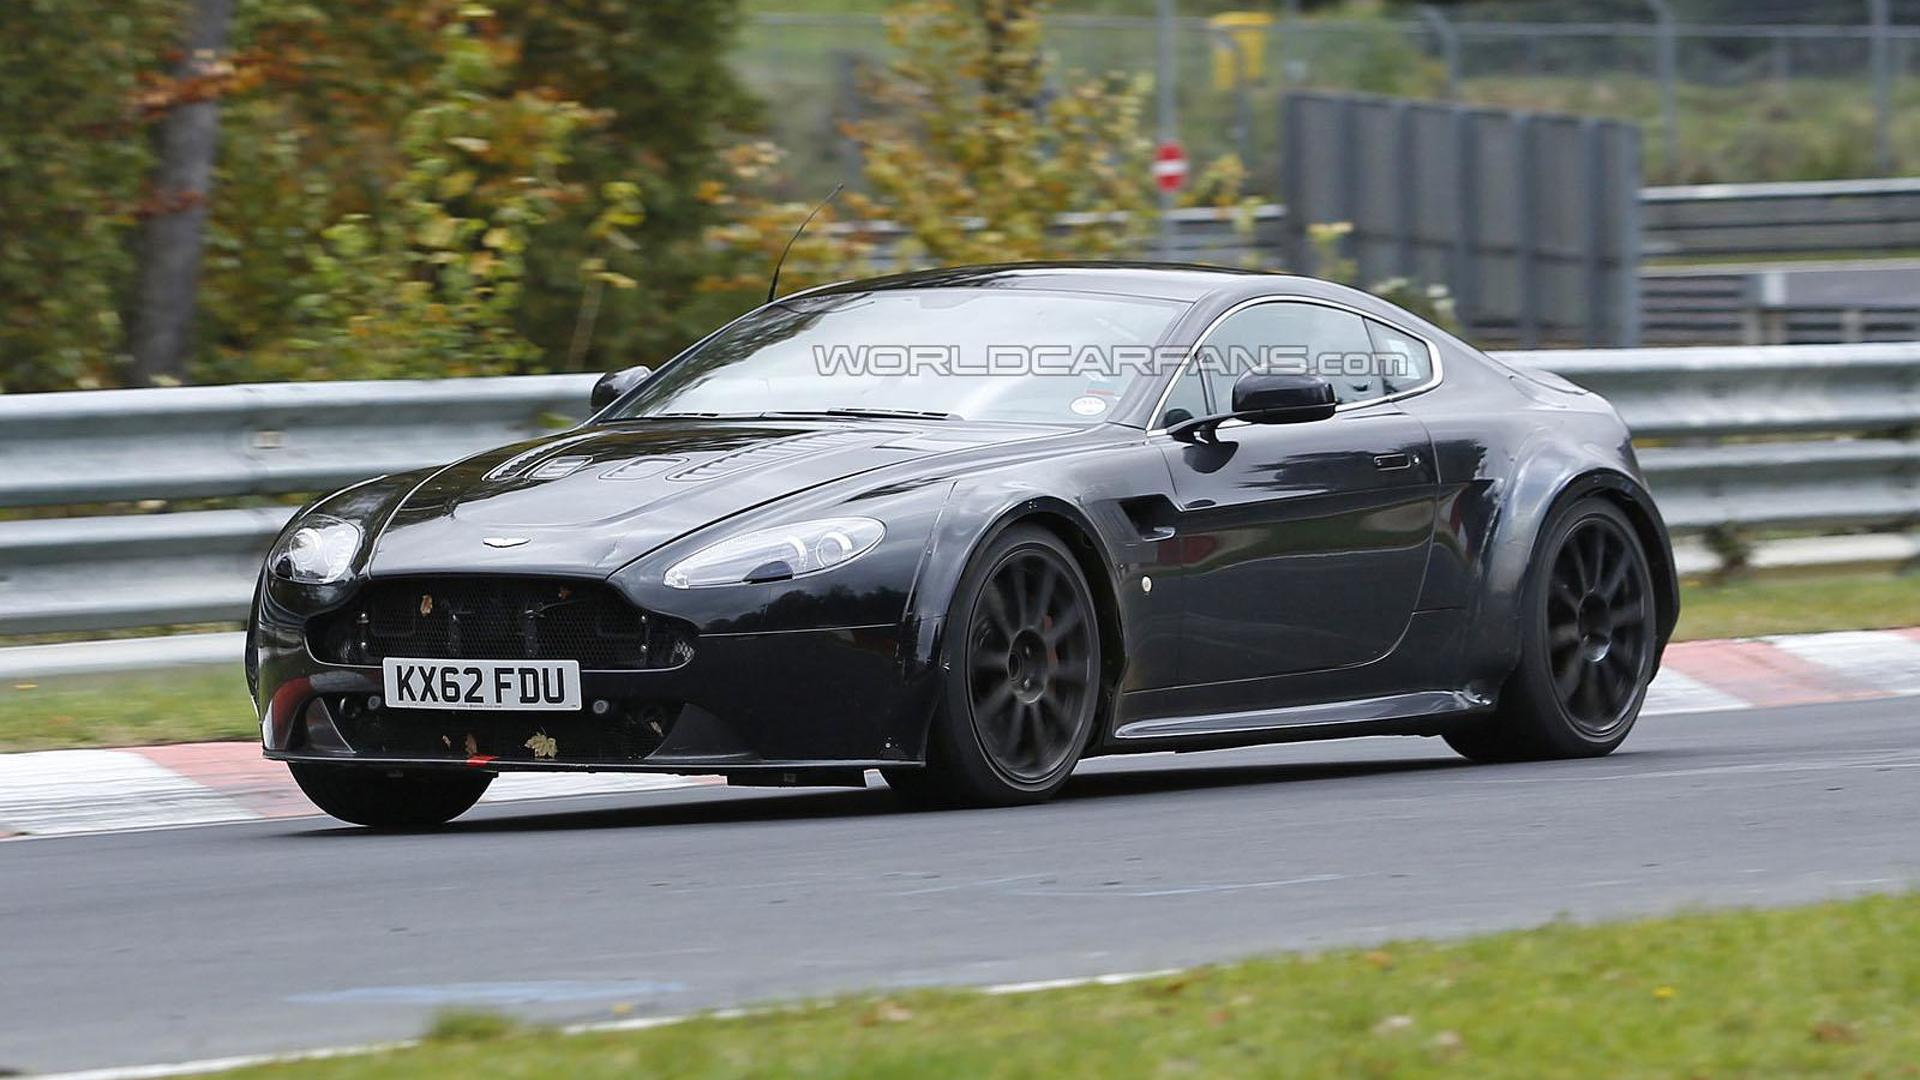 Mysterious Aston Martin Vantage Prototype Spied Is It A Mule For The Next Generation Model